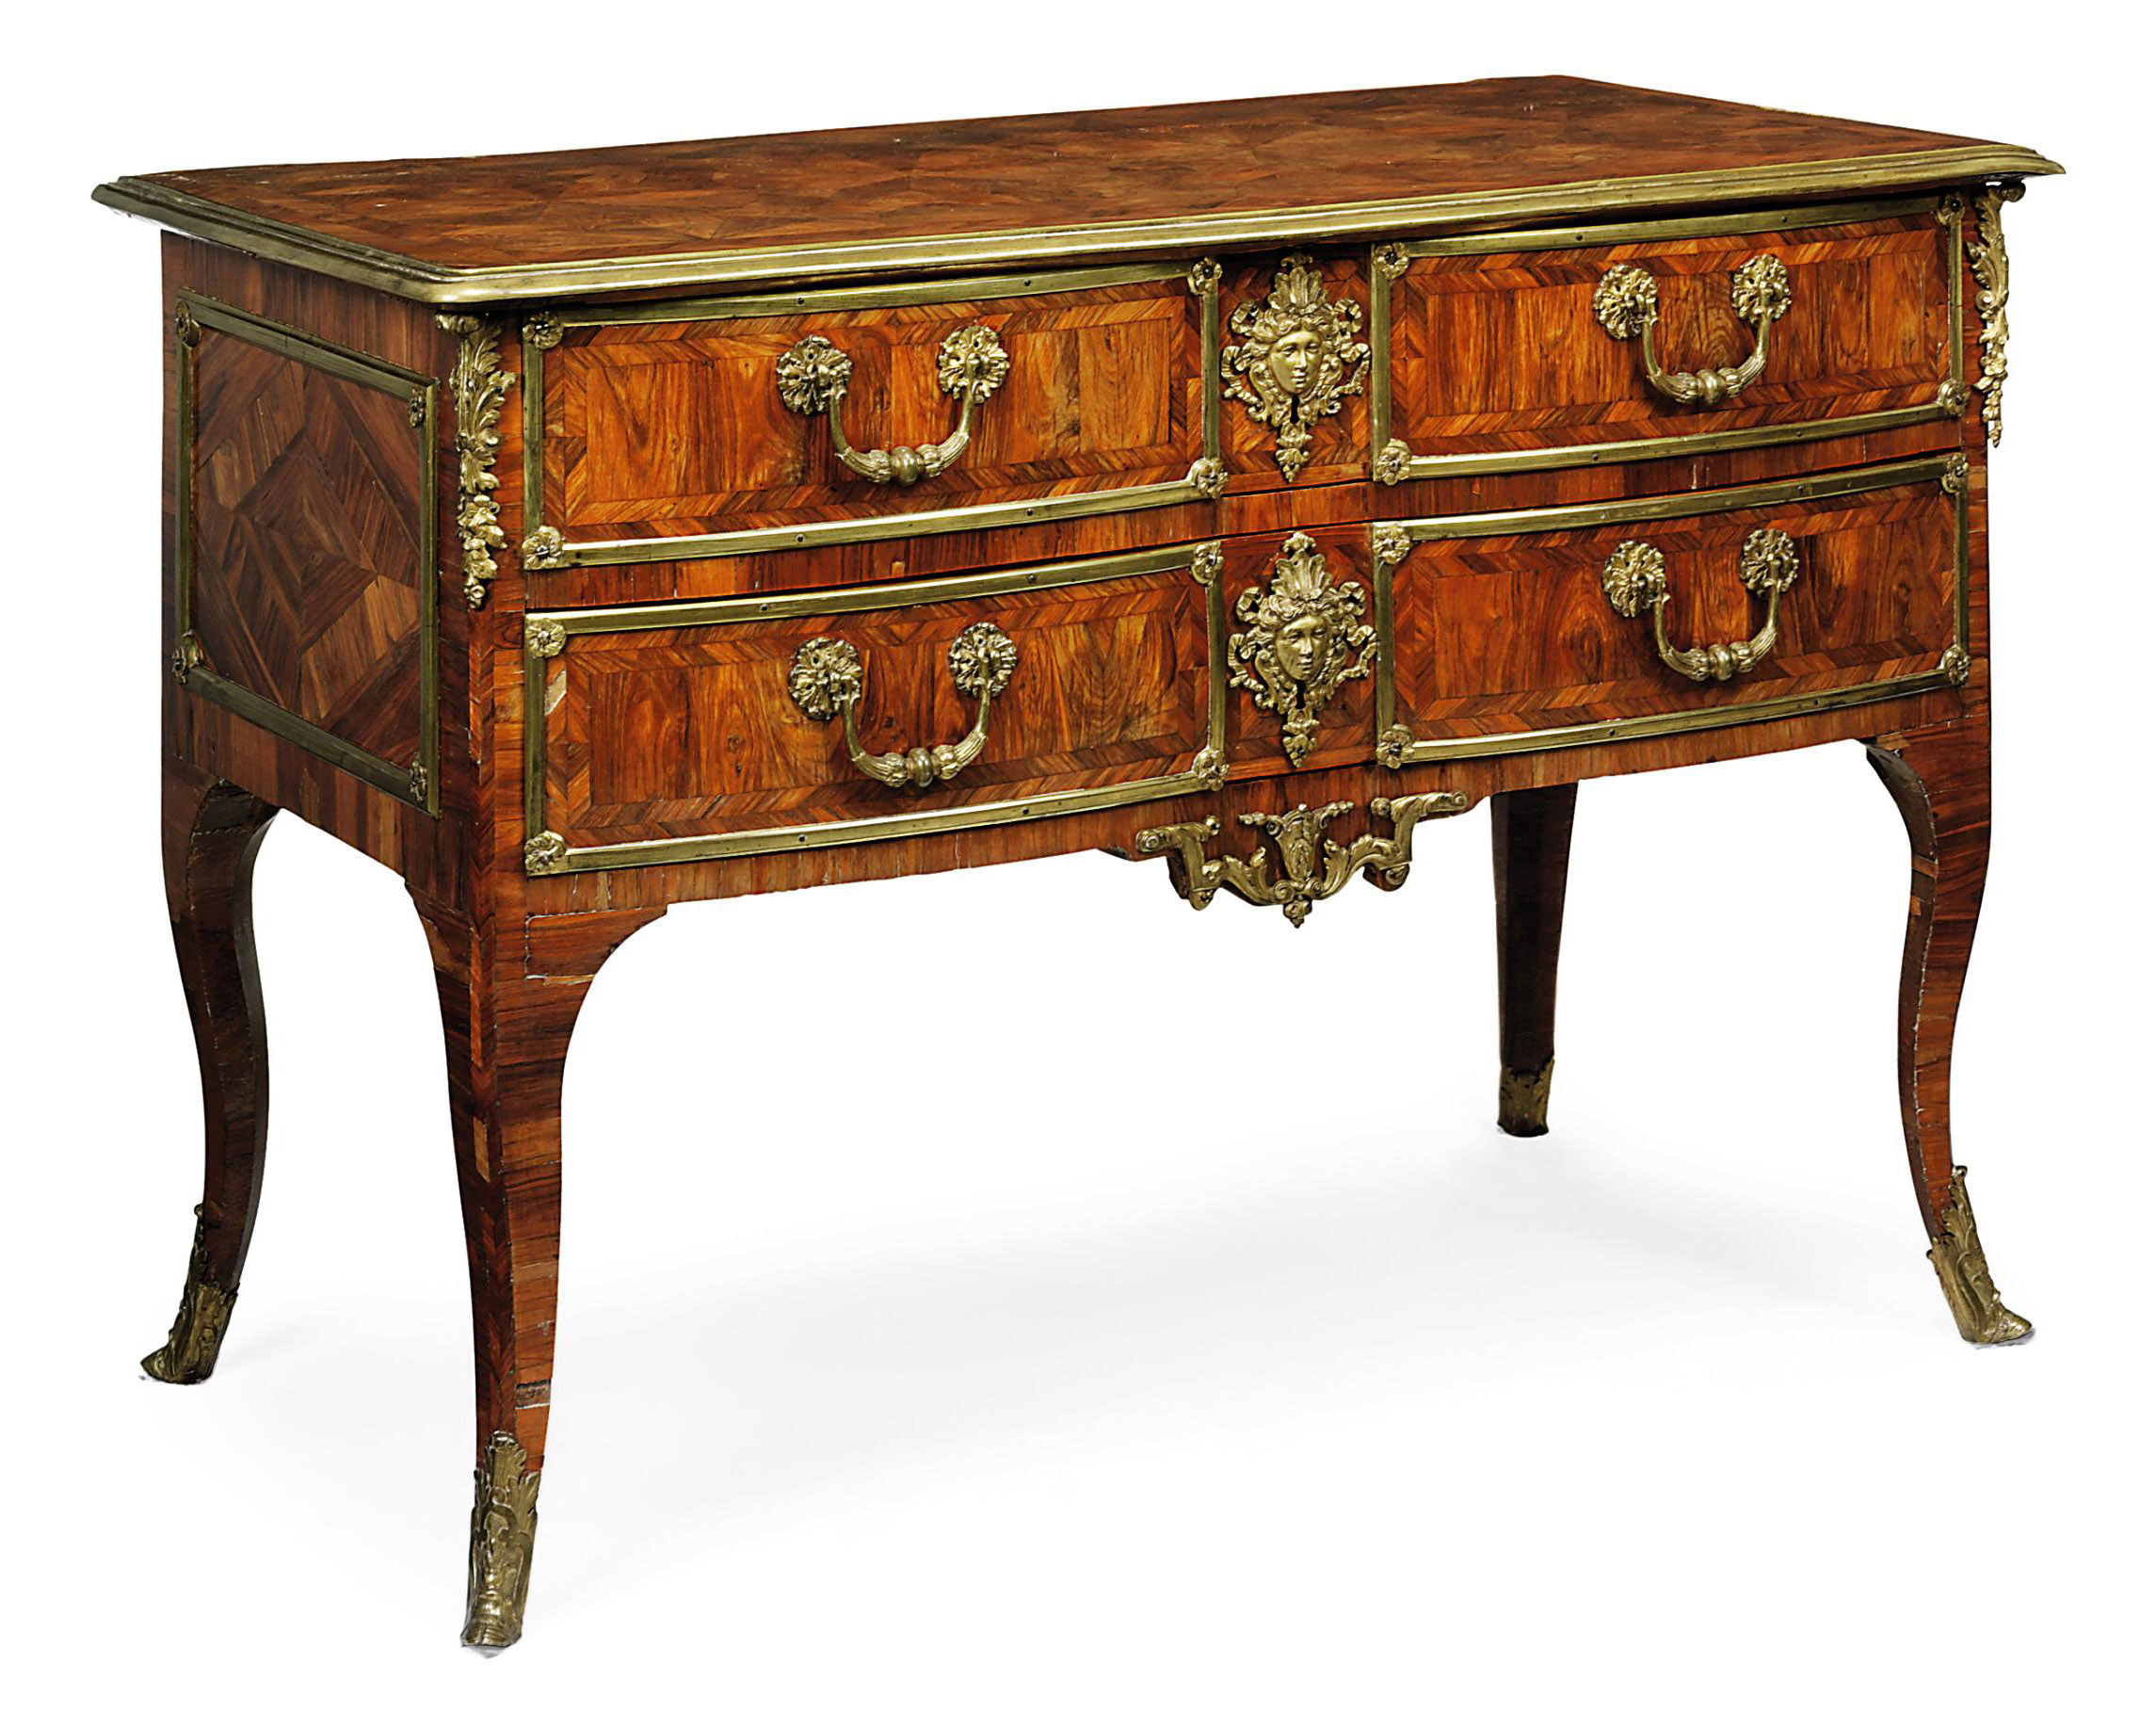 A REGENCE ORMOLU-MOUNTED KINGWOOD AND PARQUETRY COMMODE